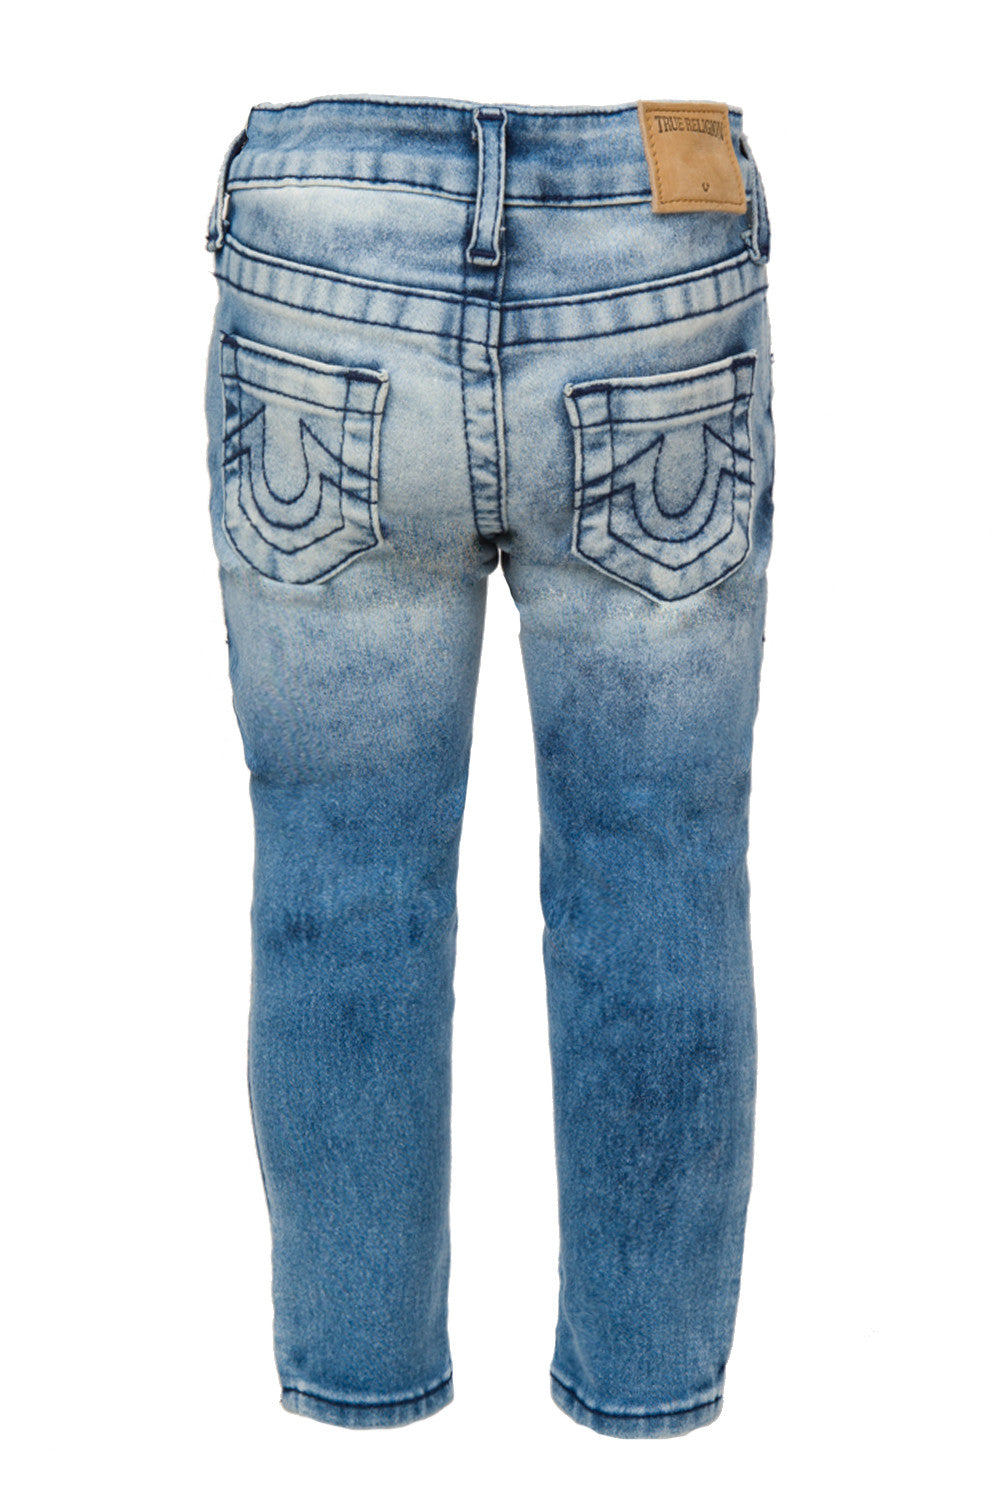 Kids Skinny Single End Rain Jeans